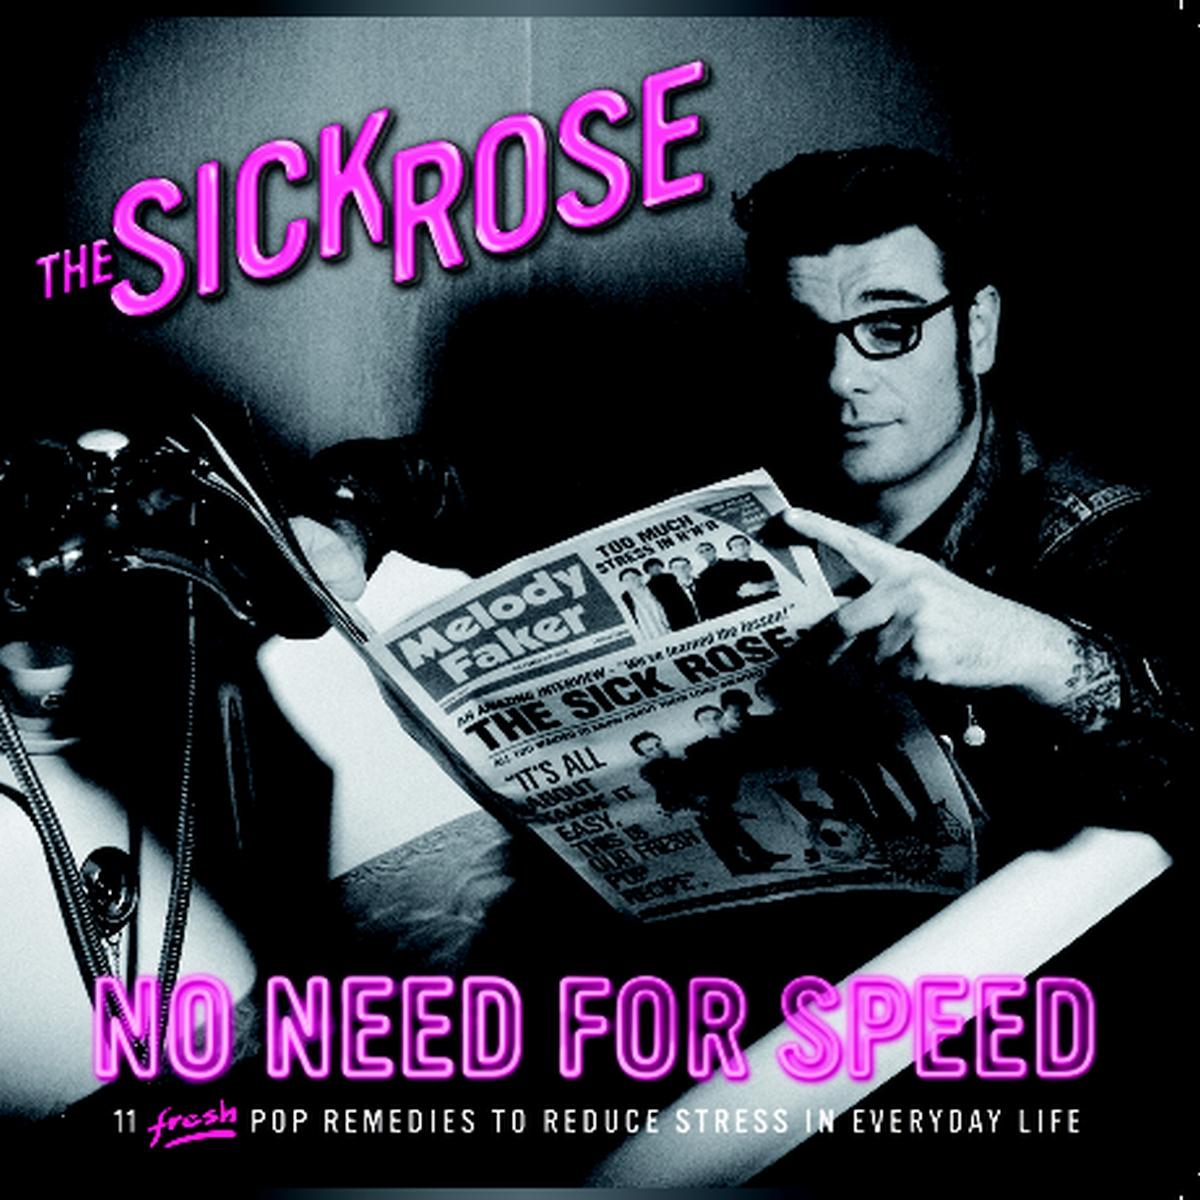 The Sick Rose - 'No need for speed' (CD)